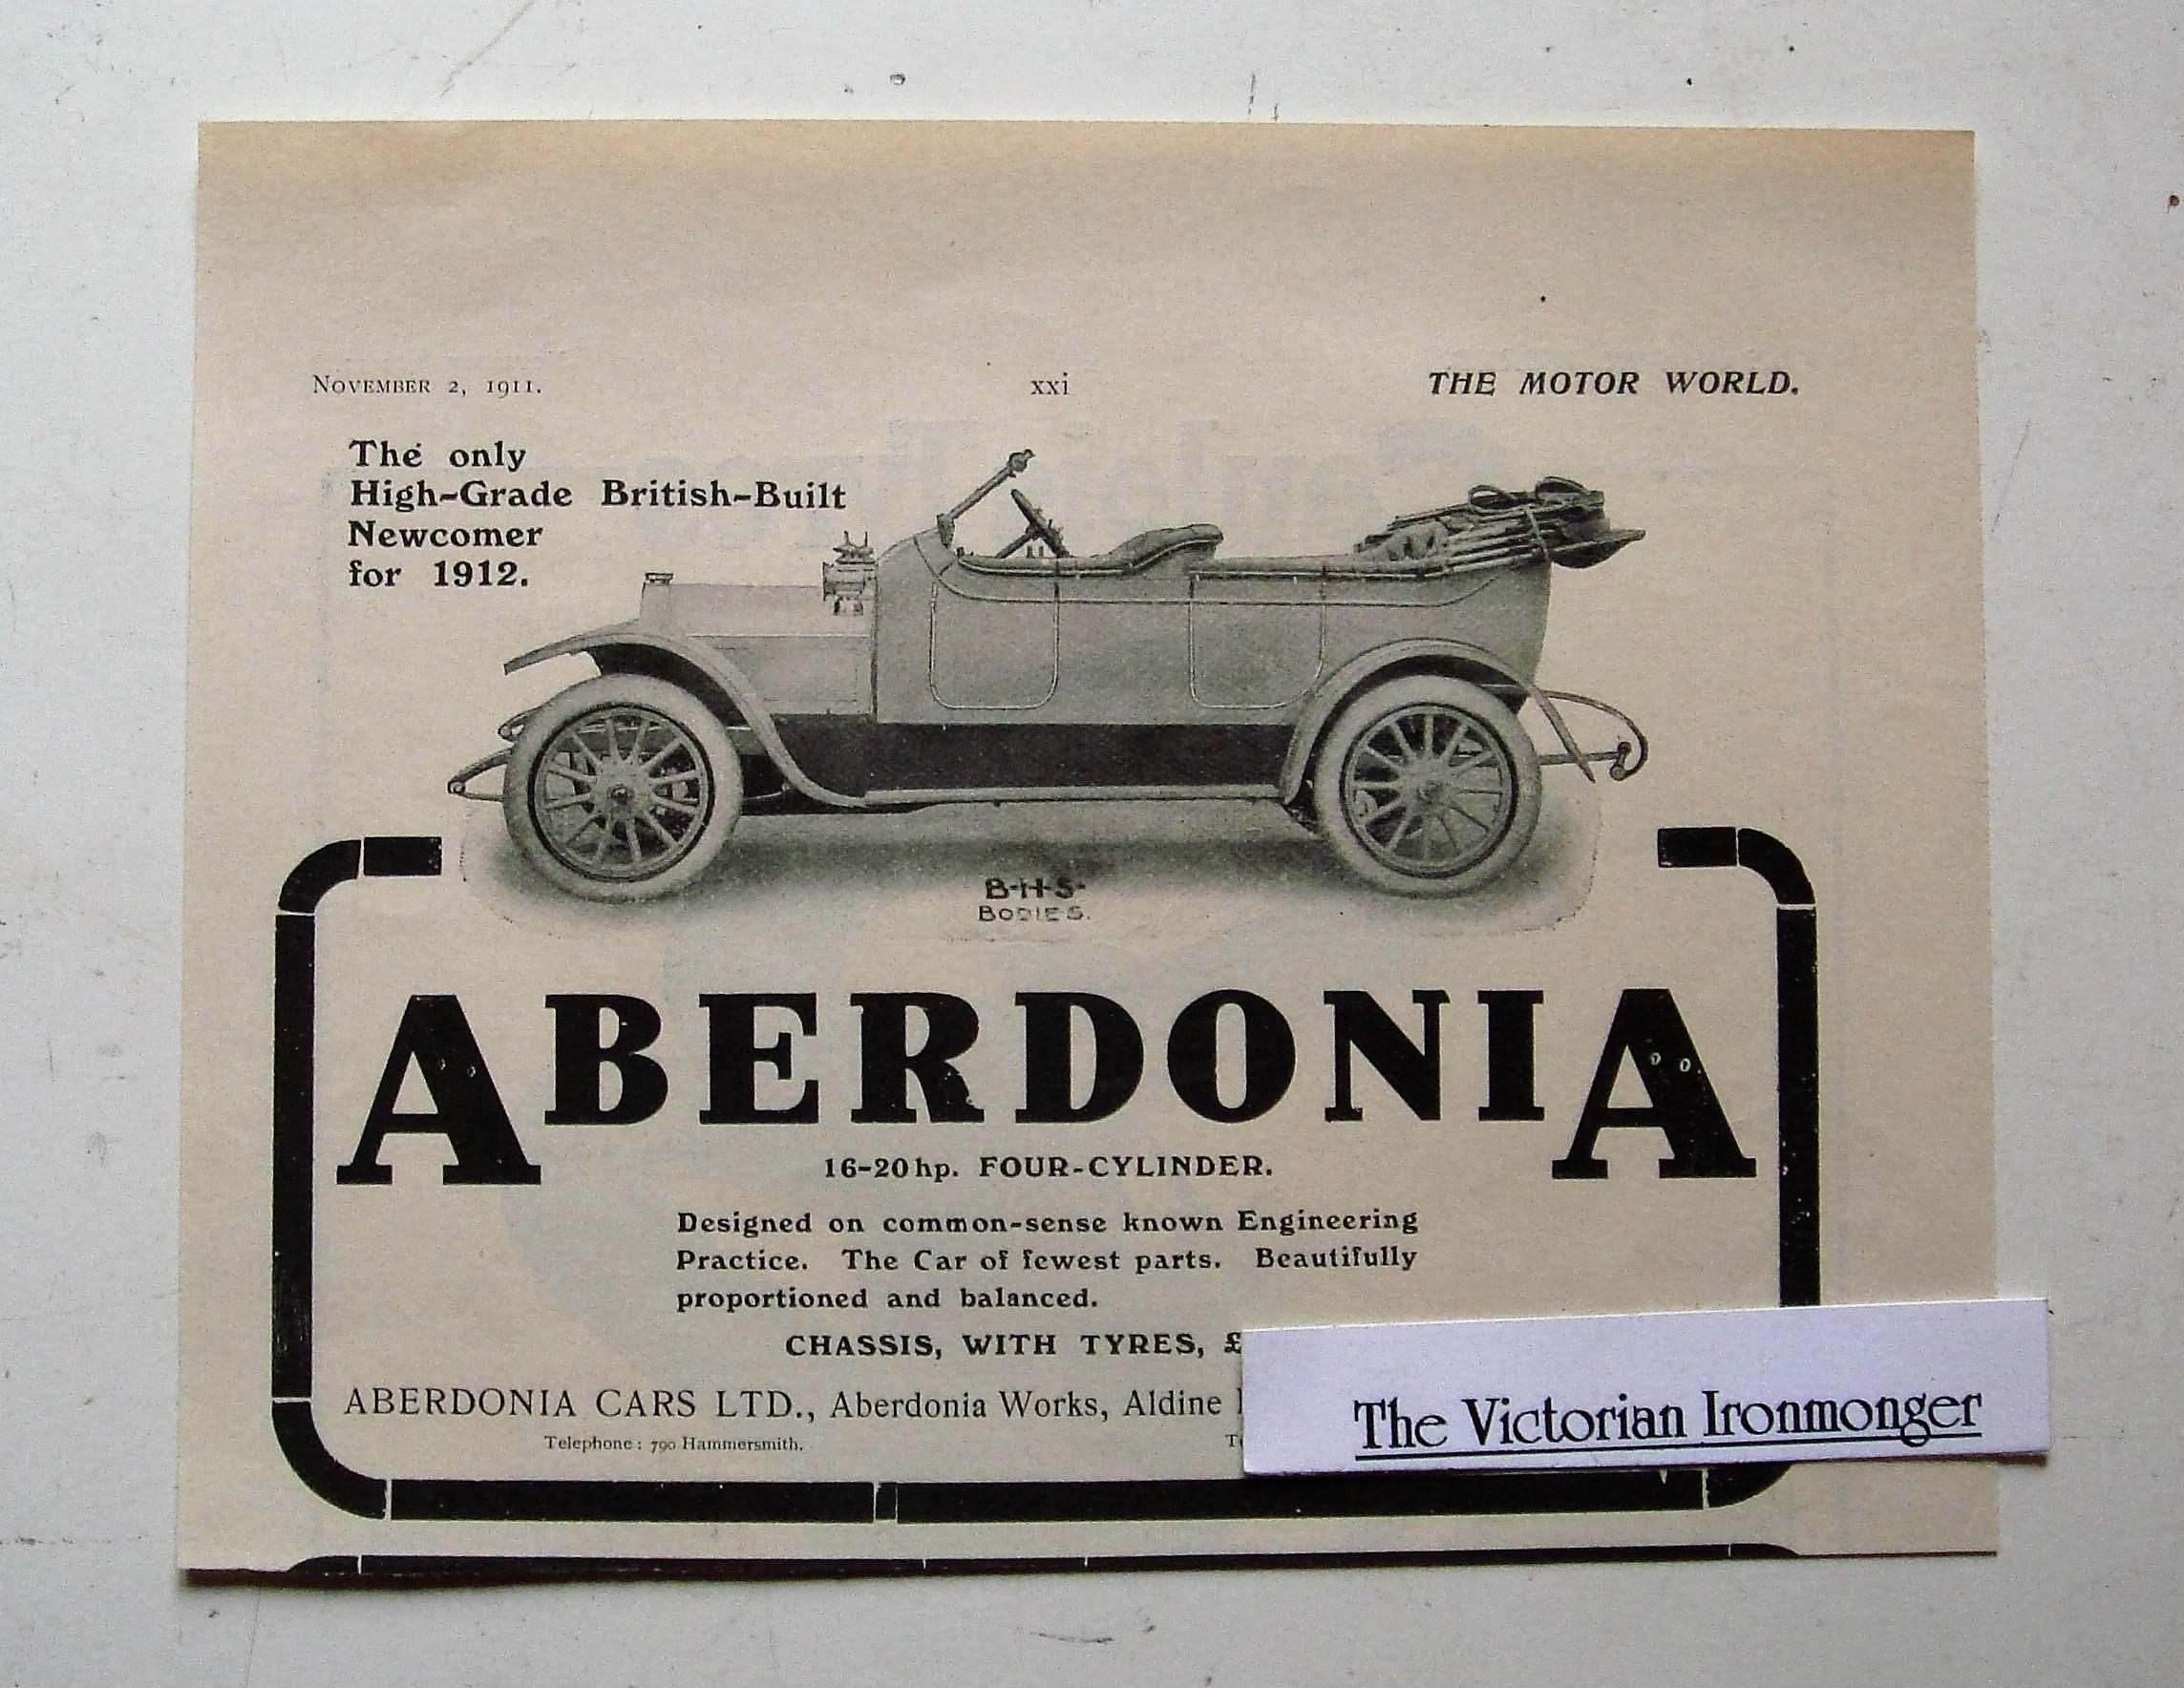 1911 Advert for The Aberdonia (Shepherds Bush) 16-20 hp Four Cylinder Touring Car.